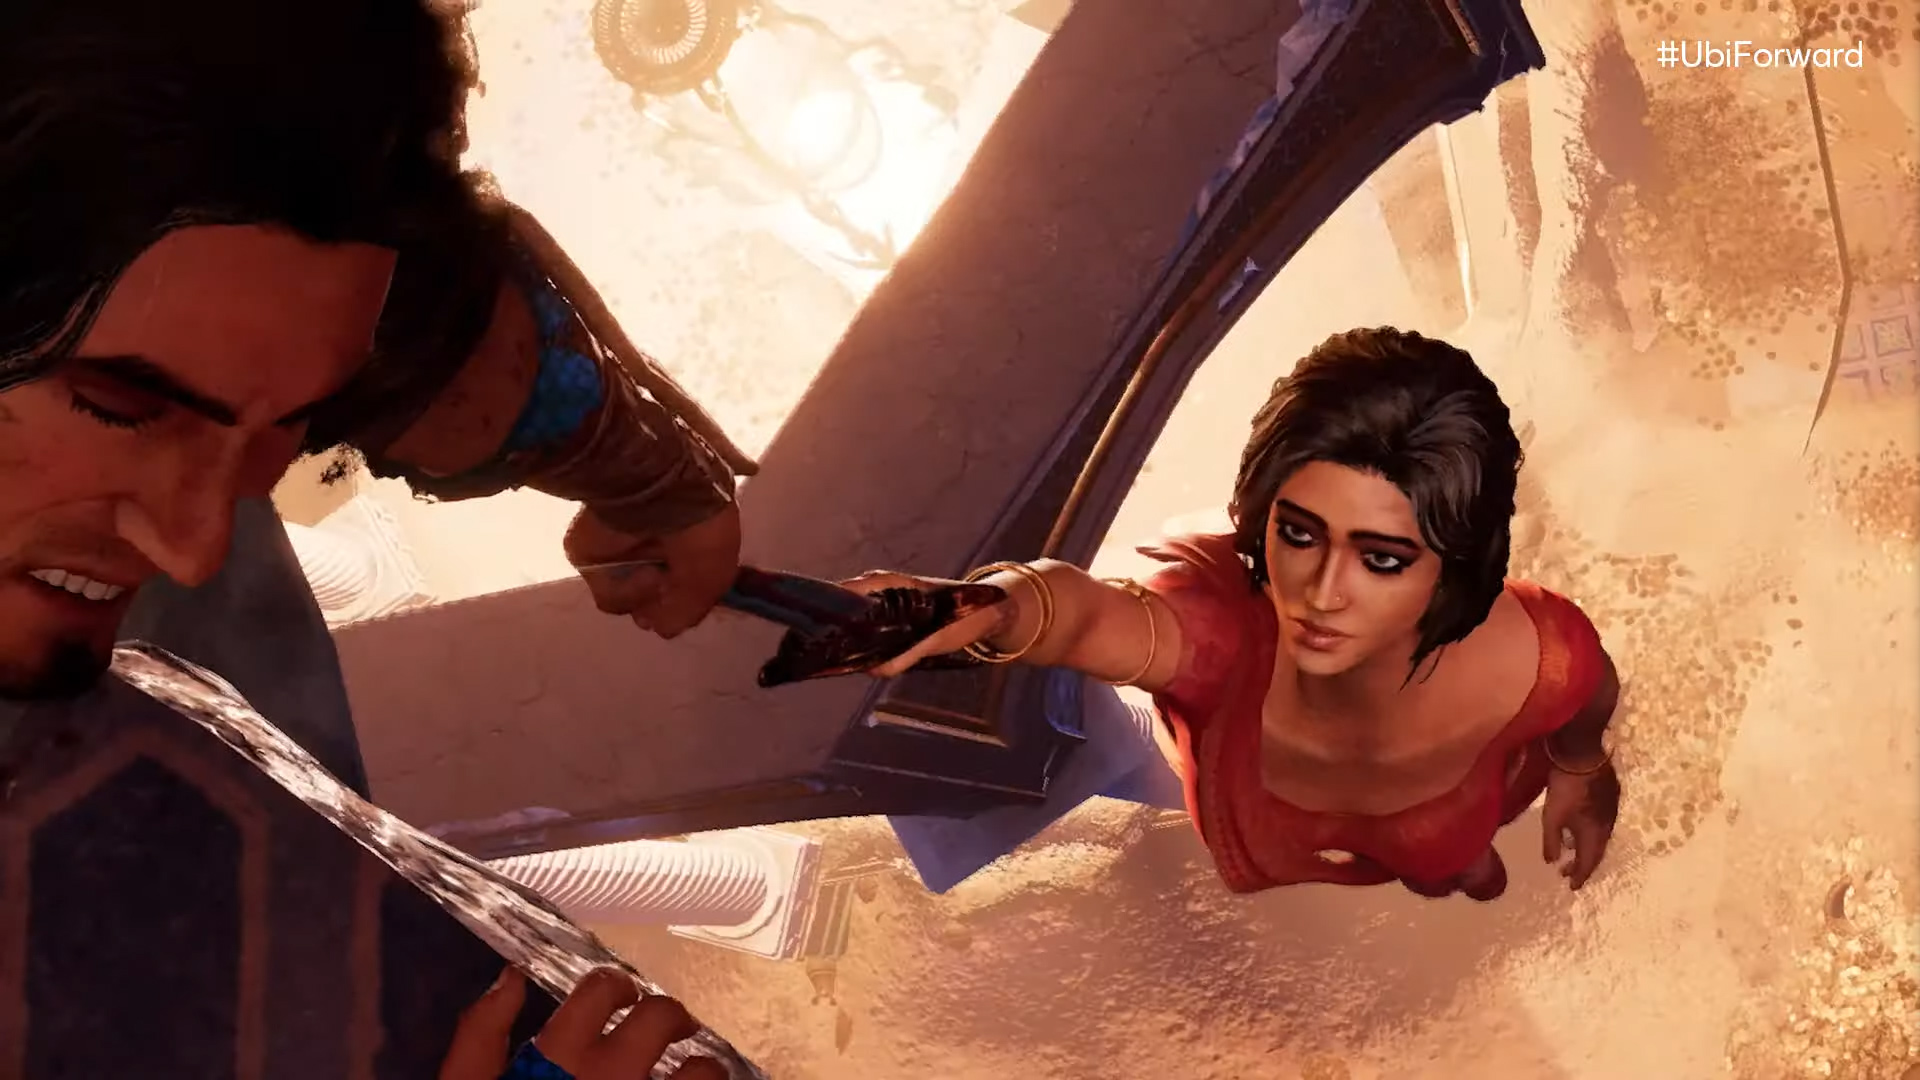 Prince of Persia: The Sands of Time Remake is out in January screenshot